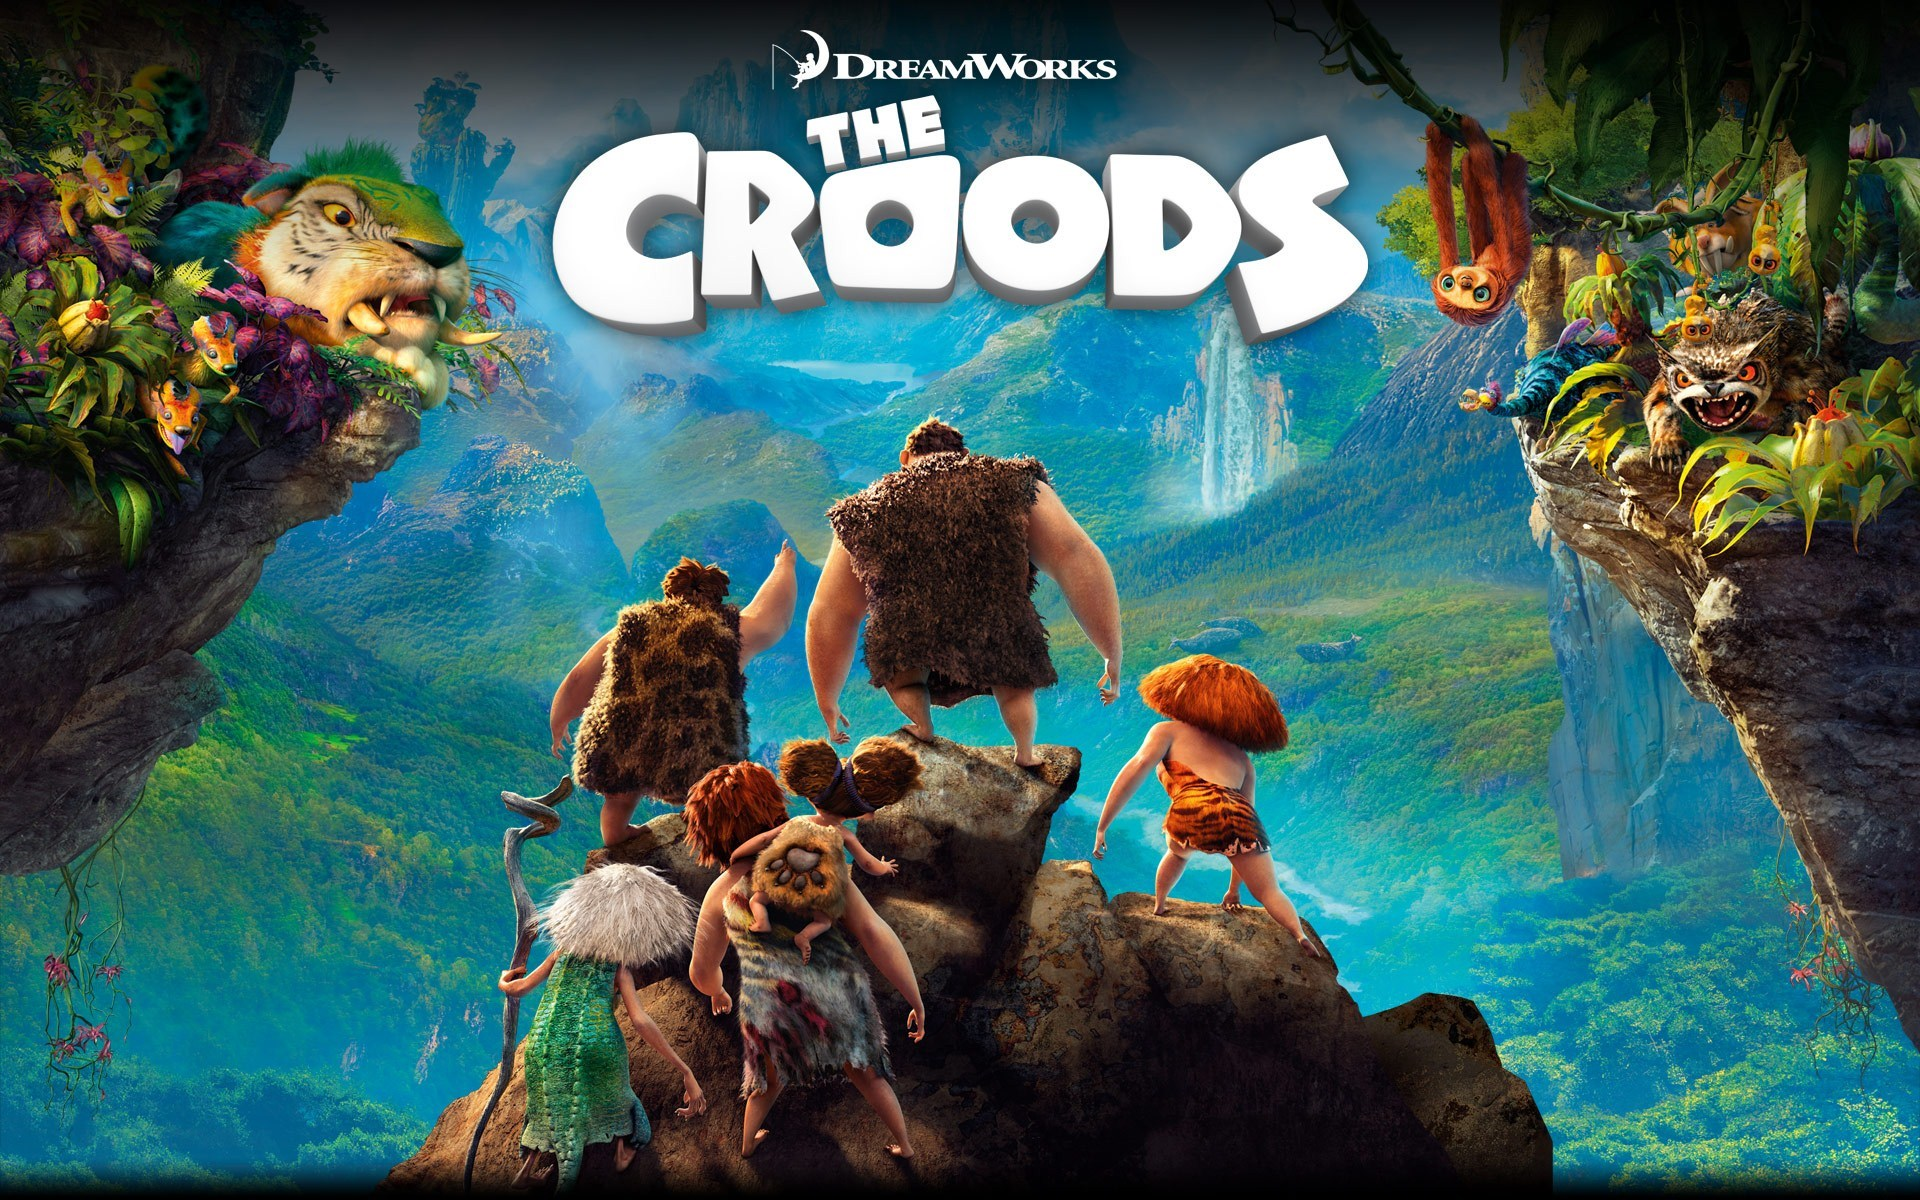 The Croods 2013 Animated Cartoon Film